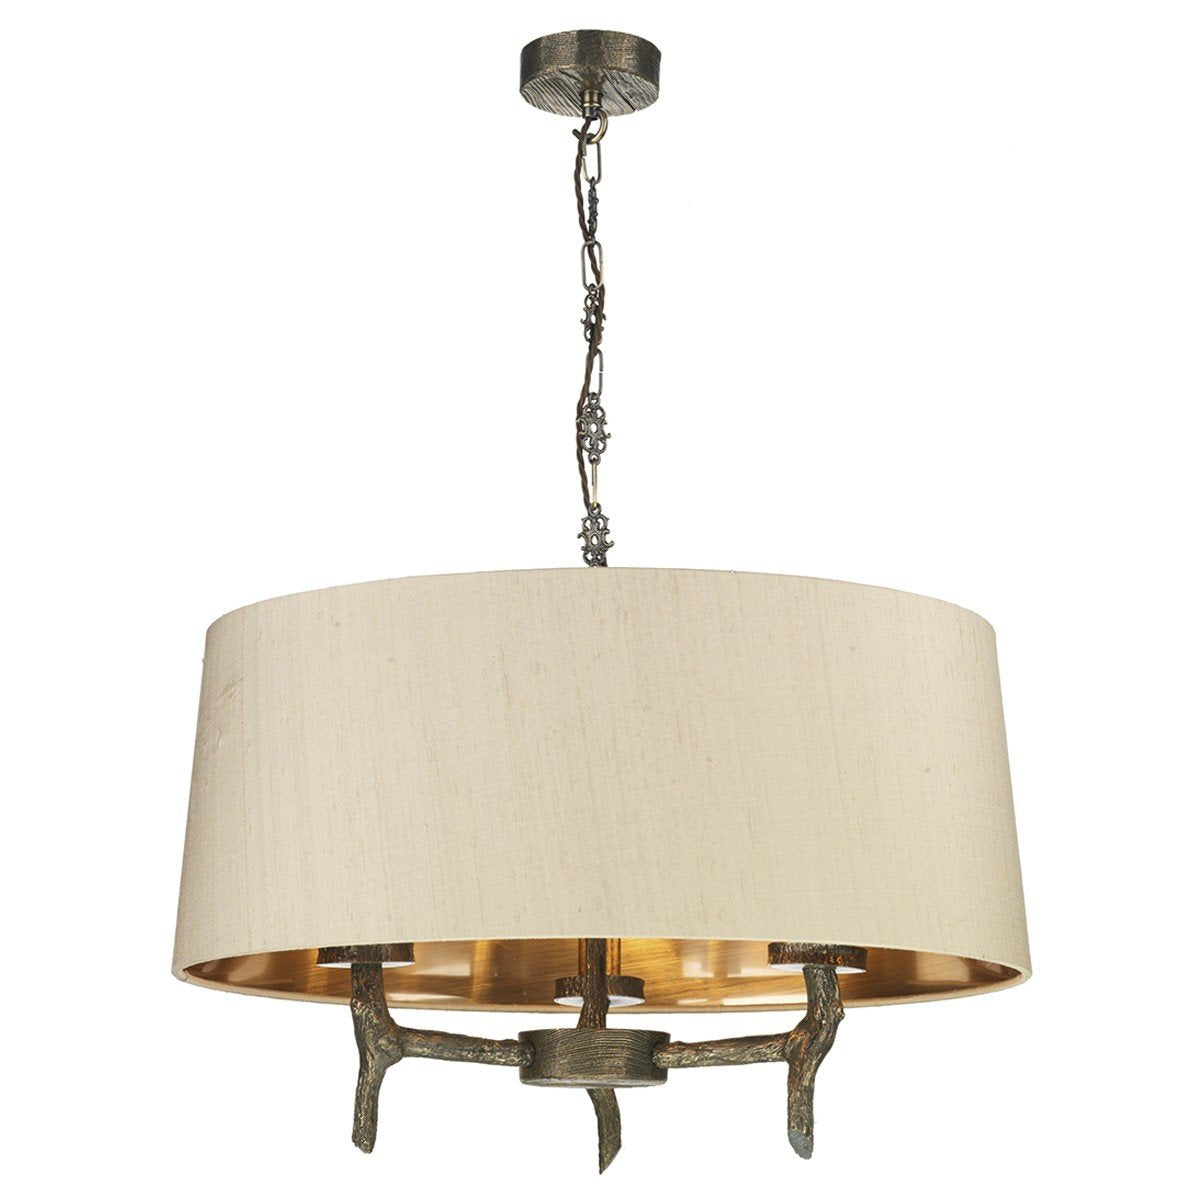 Joshua Three Lamp Ceiling Light With Shade